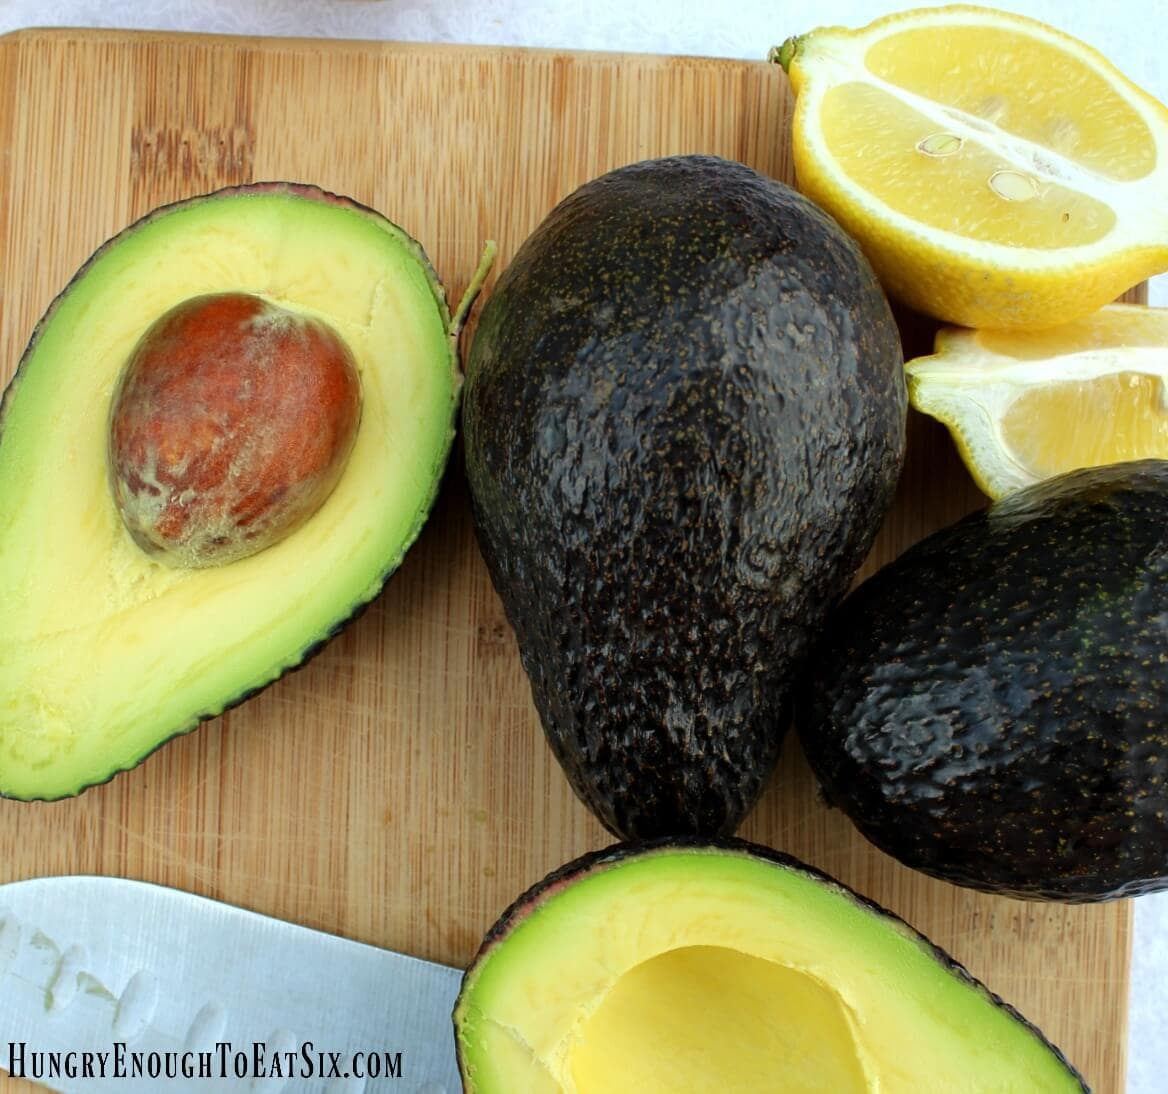 Image of sliced avocado and lemon wedges